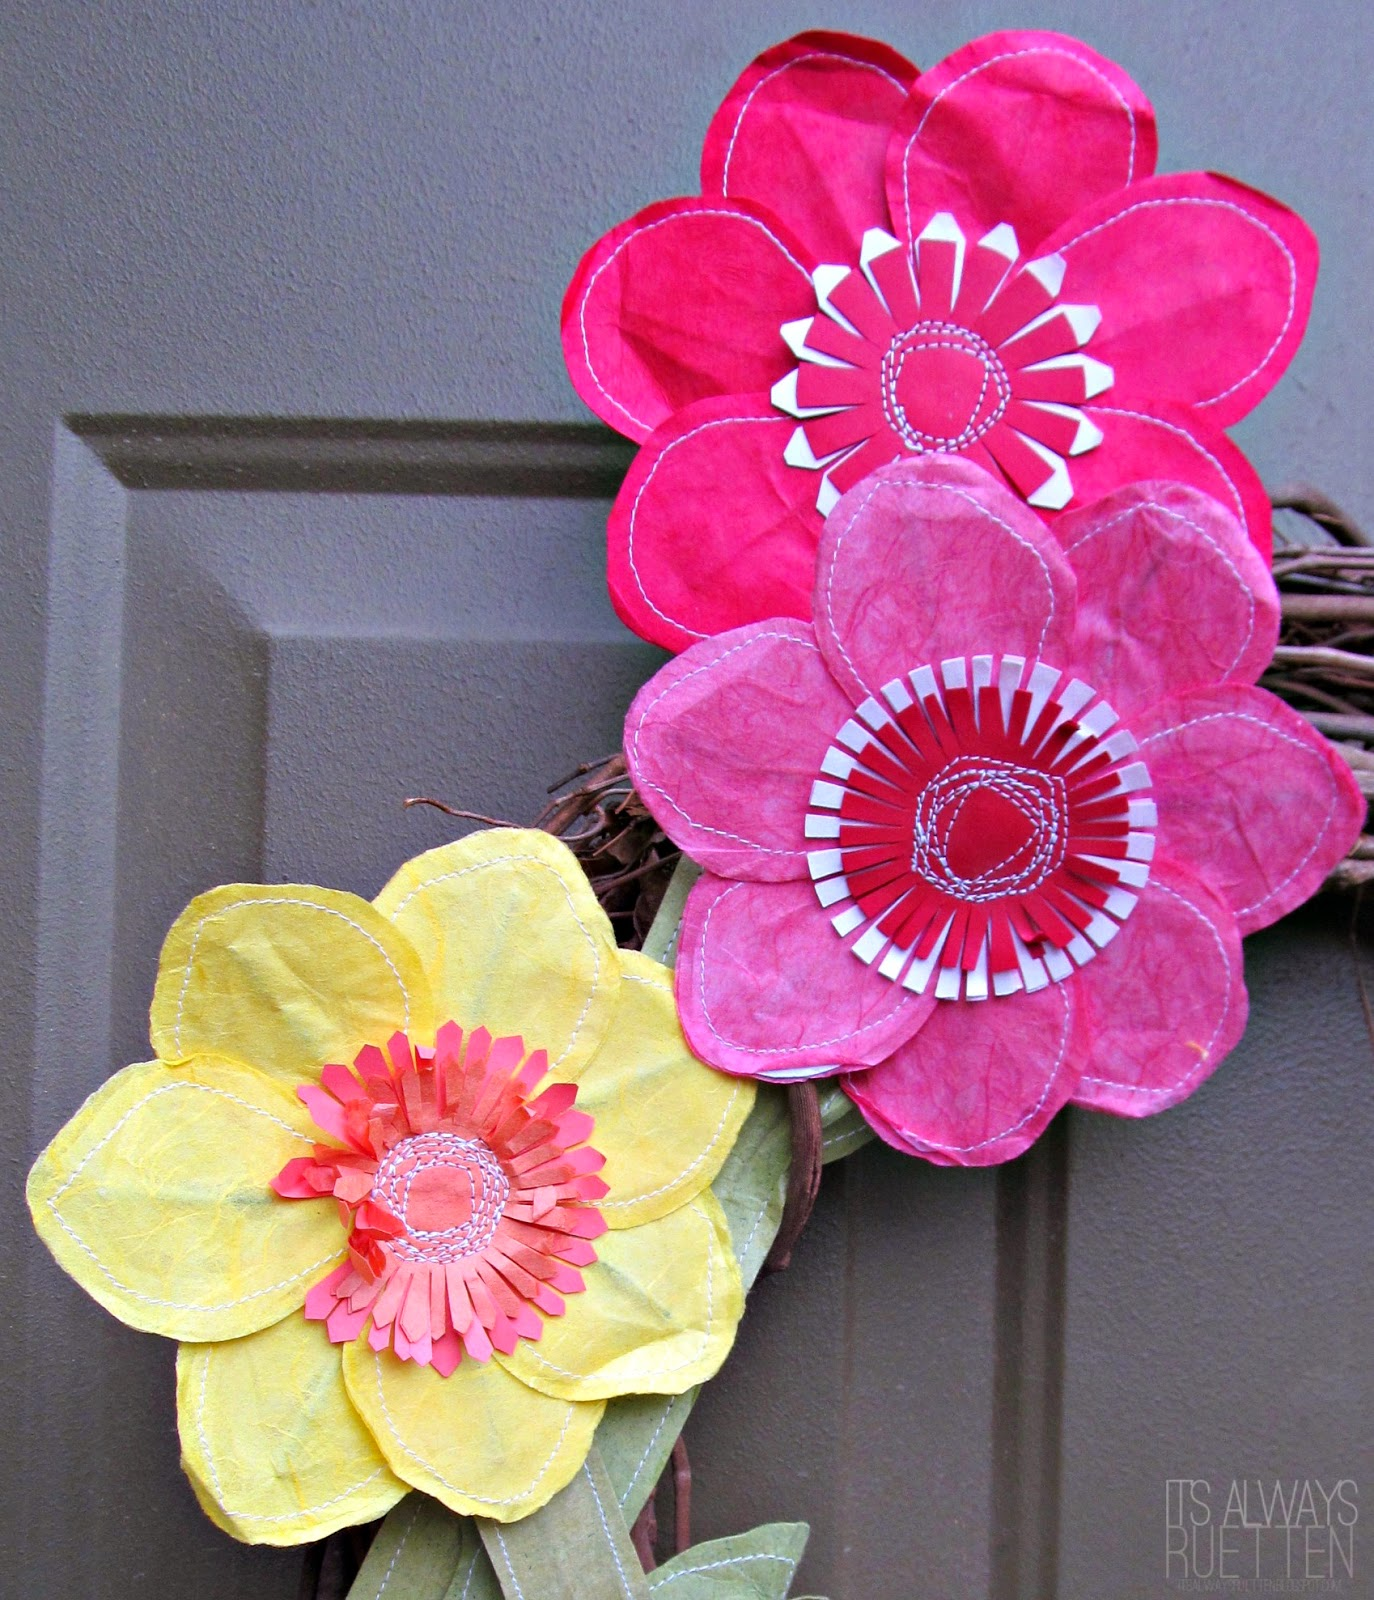 Add a pop of color to your porch with a Spring Wreath for Spring!